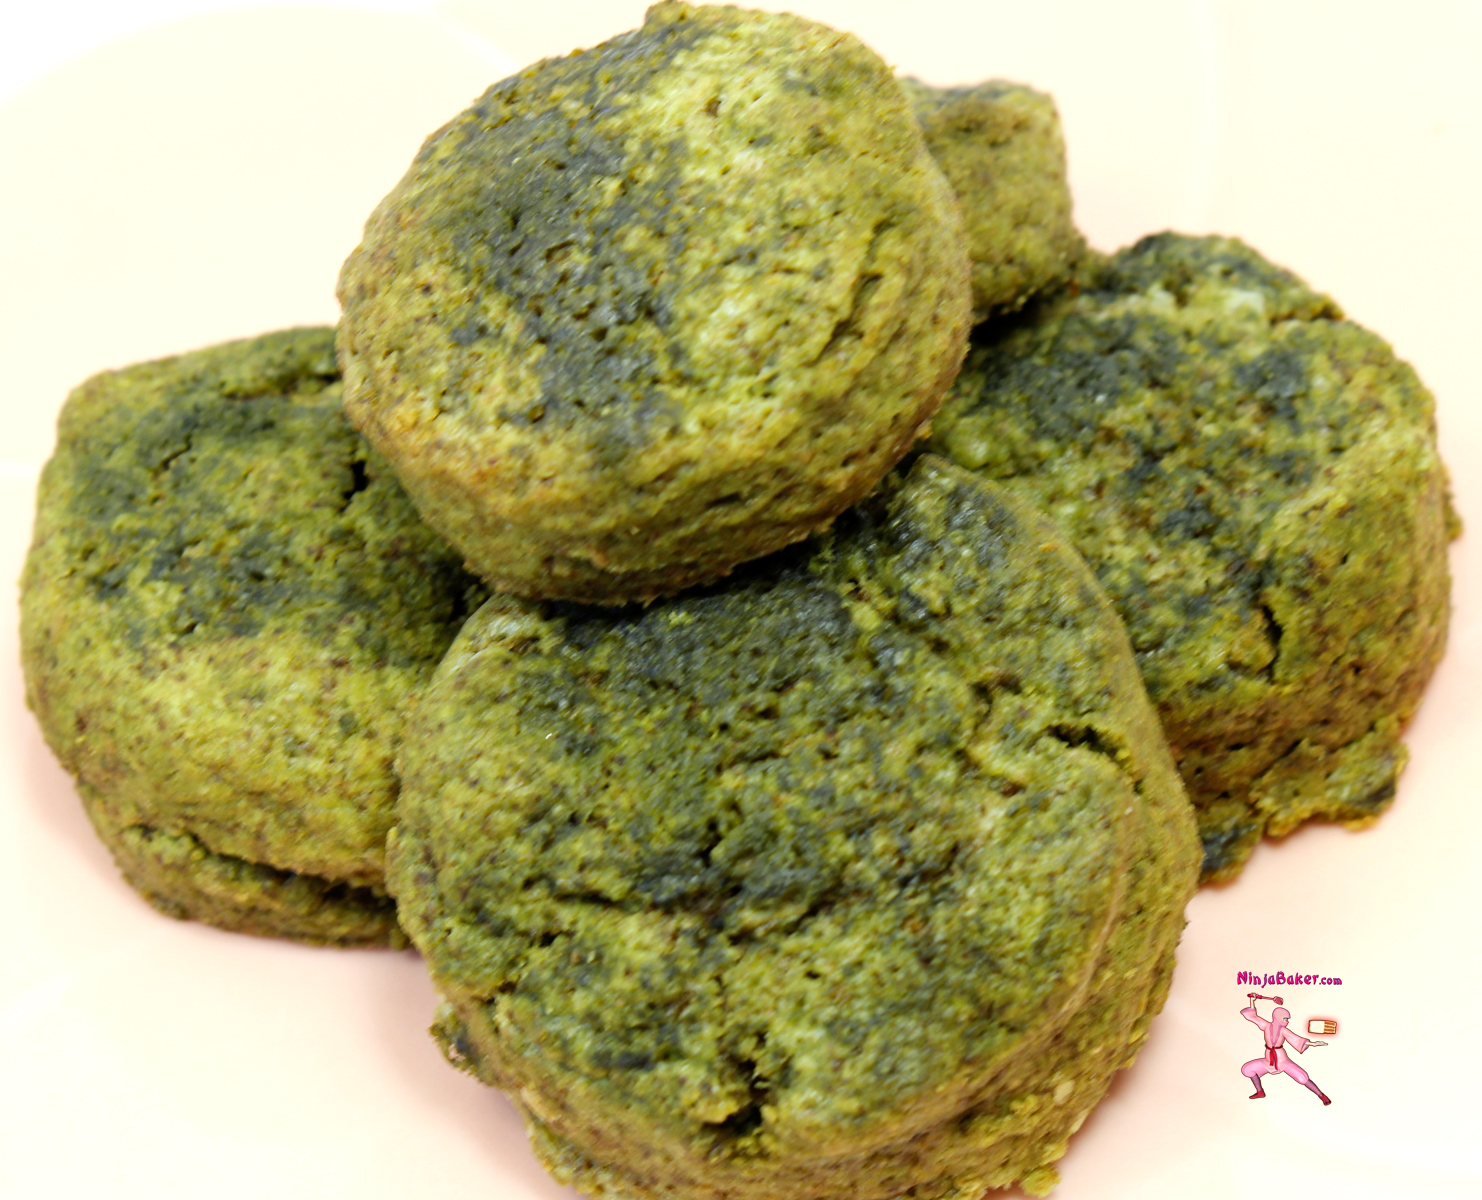 #matcha #Japanese #green #tea #easy #recipe#Yunomi #Japan #scones